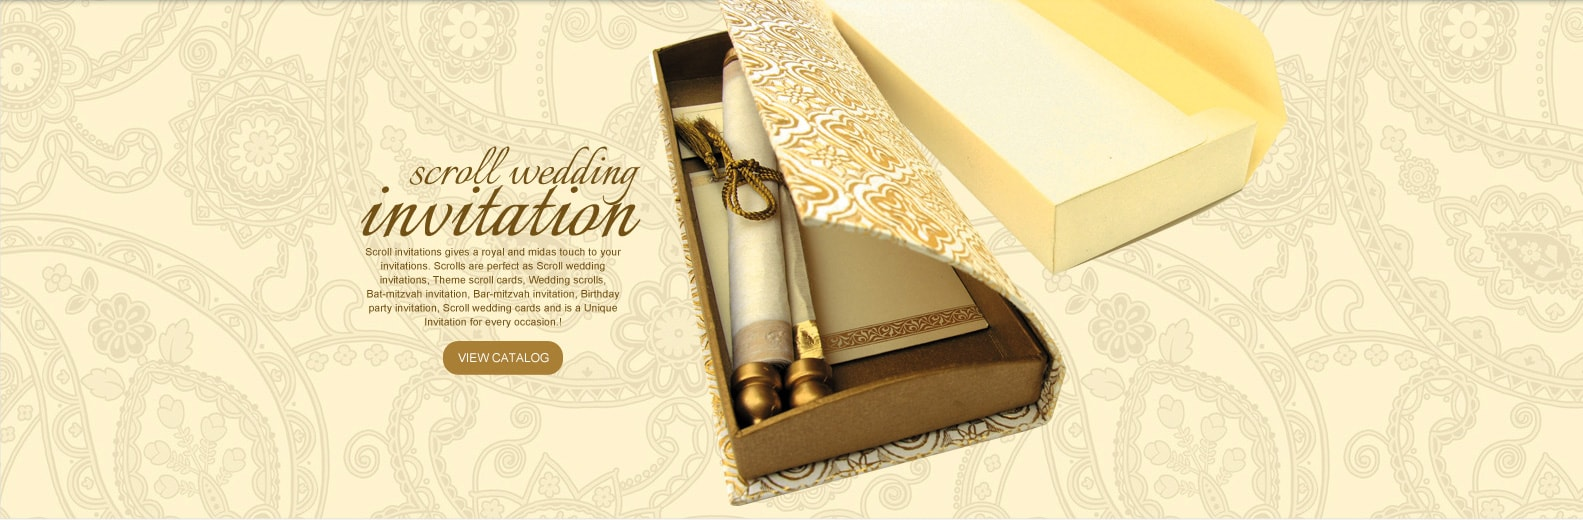 Scroll Invitations Bat Amp Bar Mitzvah Invitations Wedding